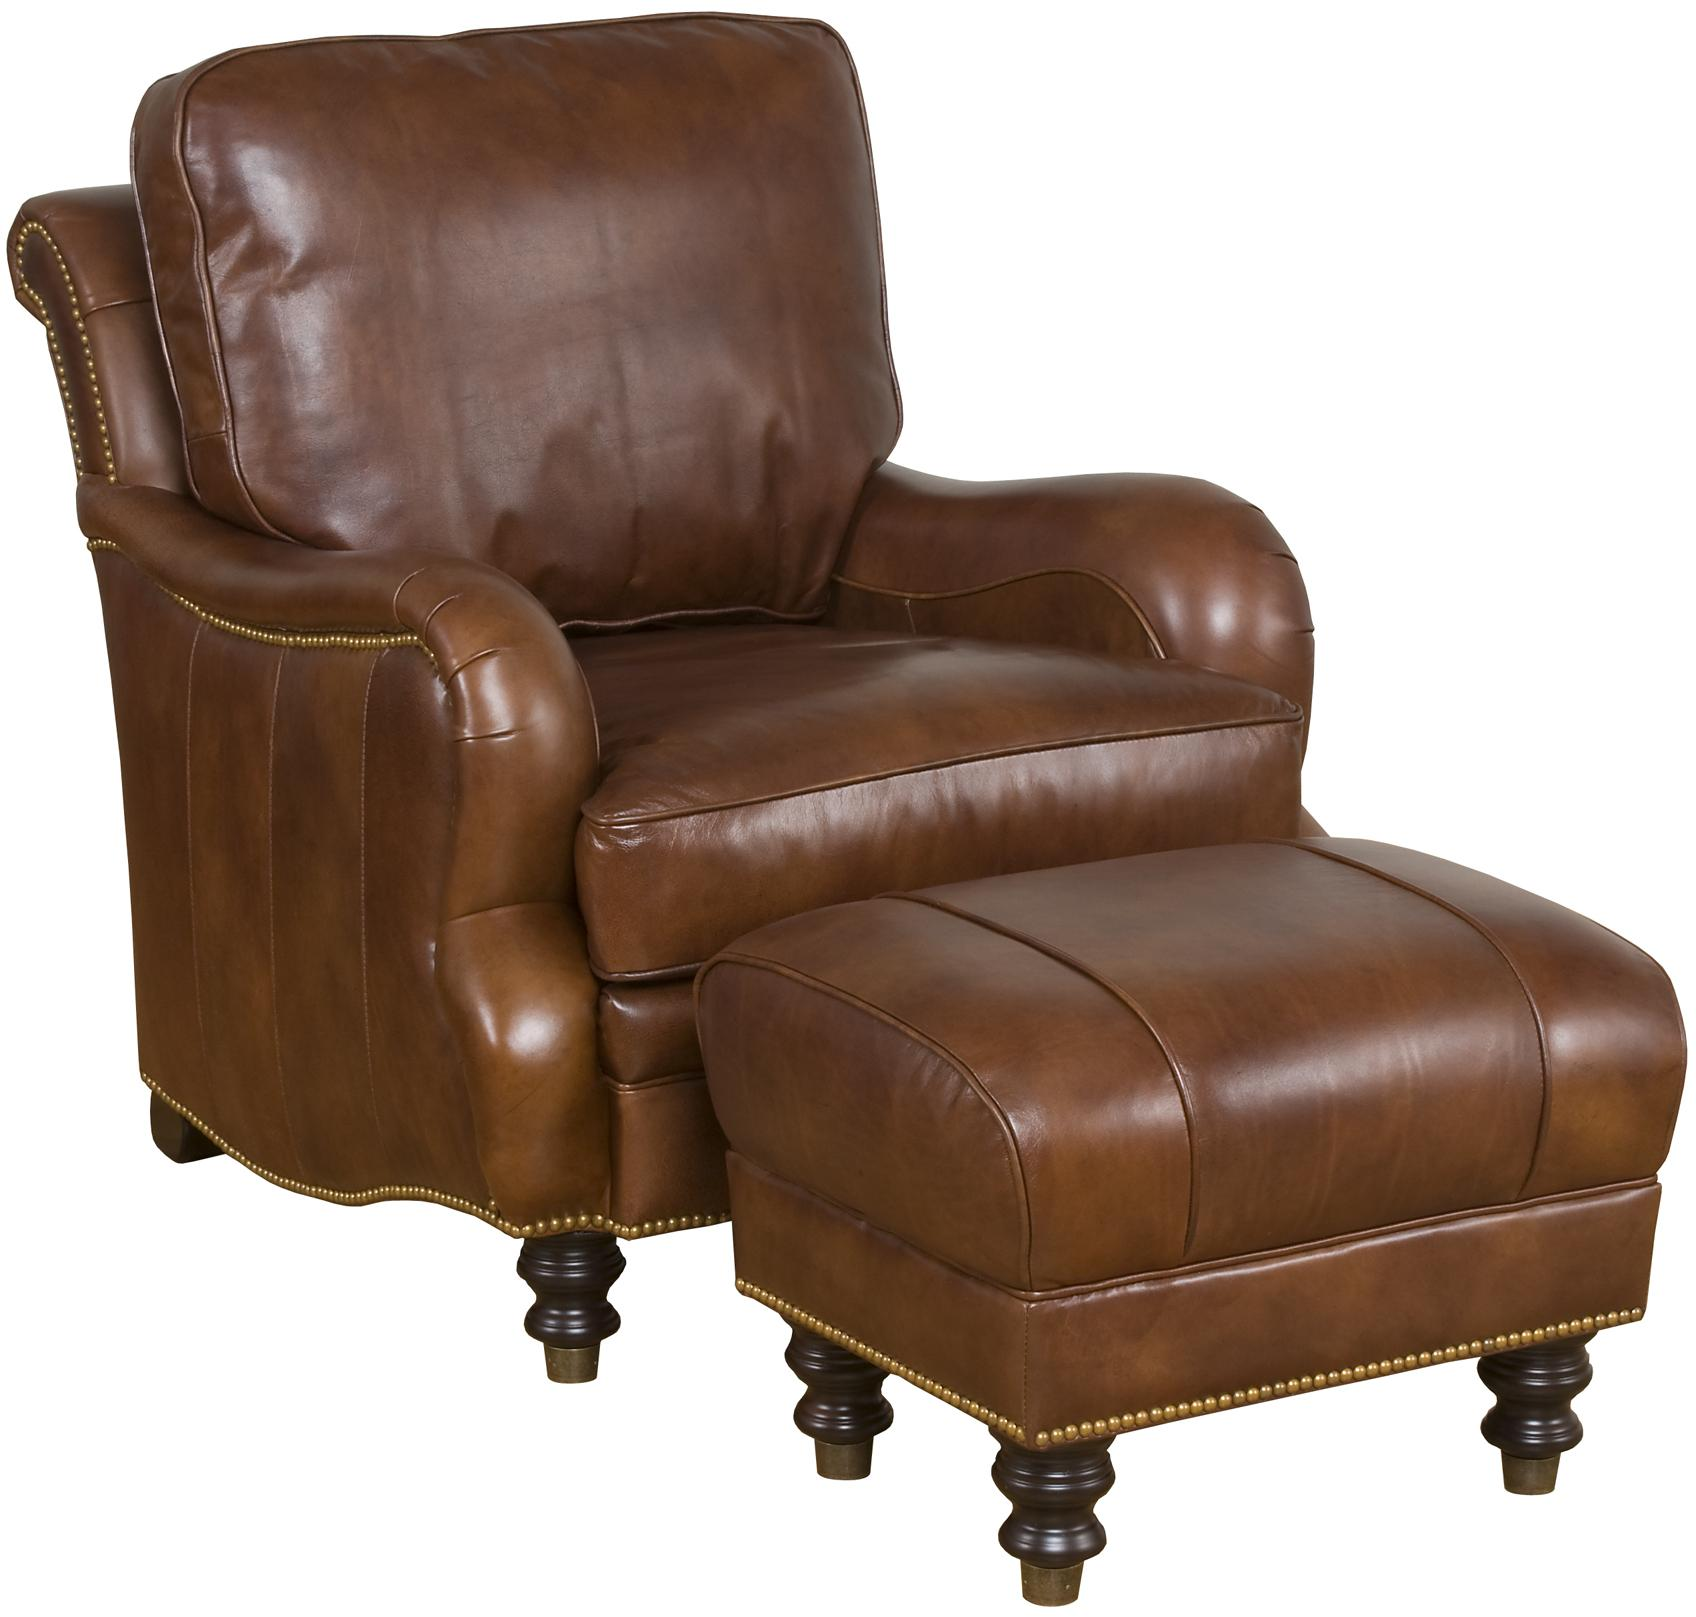 King Hickory Accent Chairs and Ottomans 5498D London